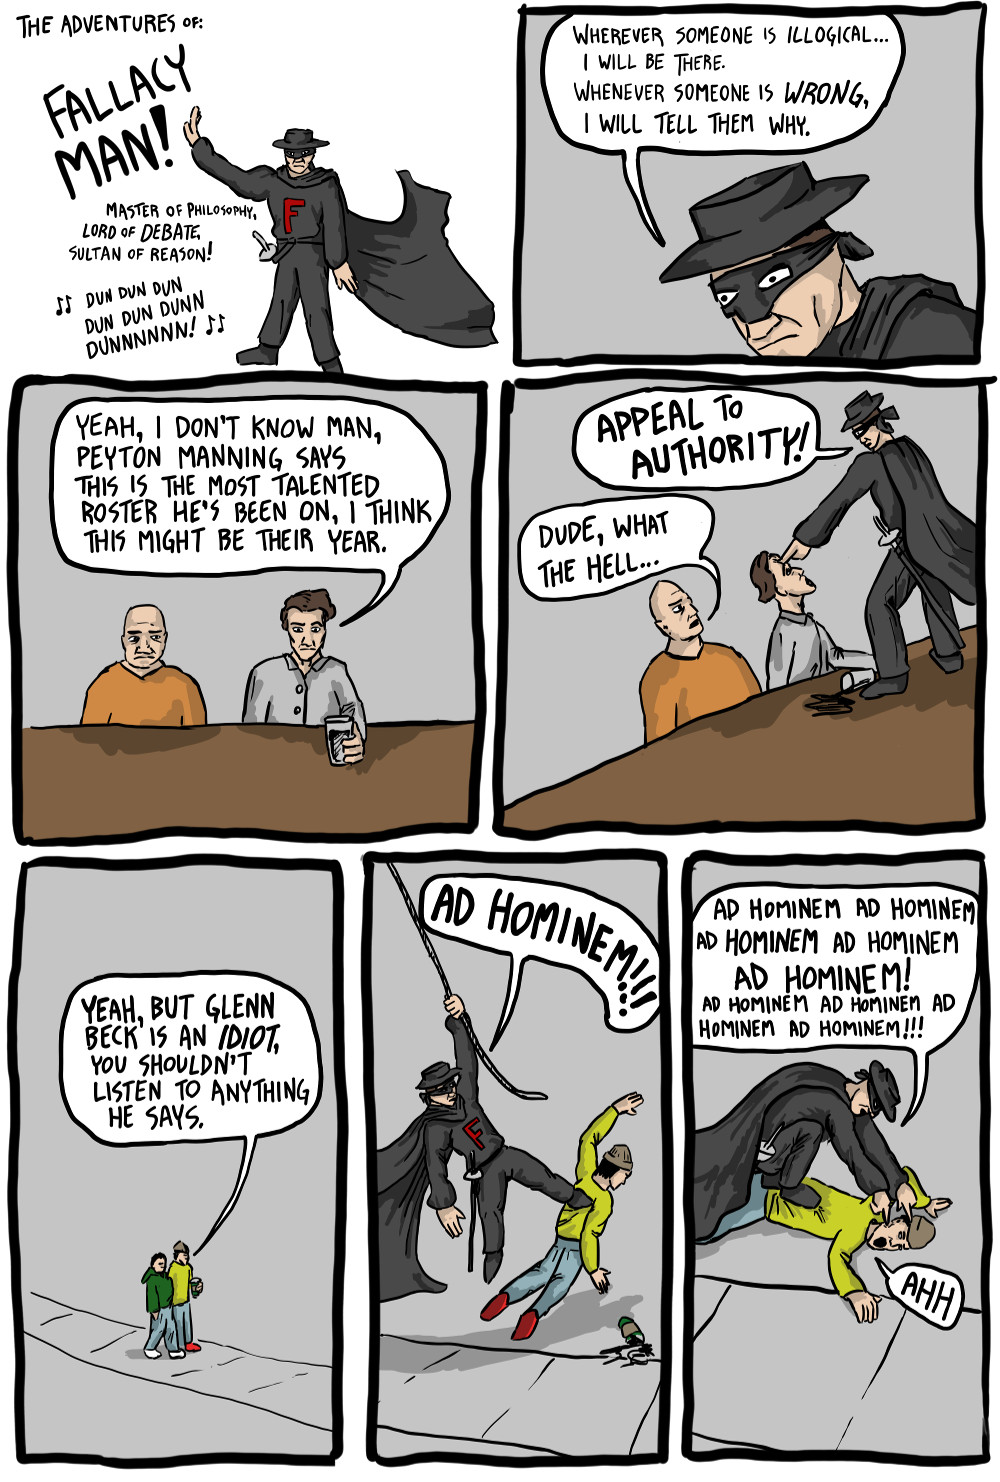 The Adventures Of Fallacy Man Existential Comics